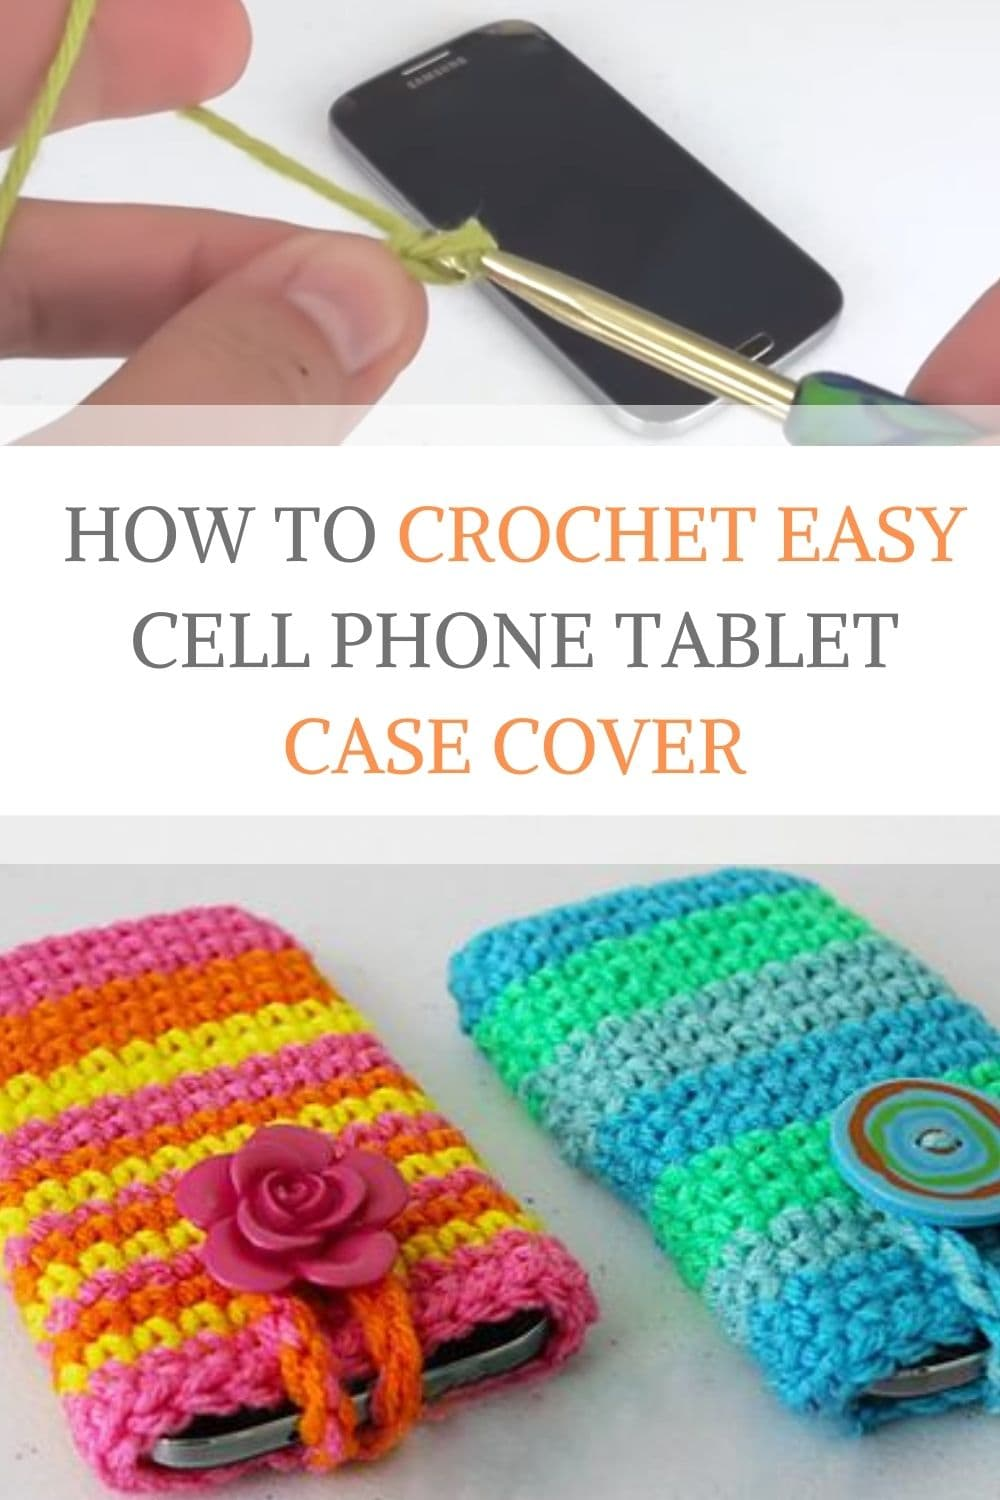 How to Crochet Easy Cell Phone Tablet Case Cover